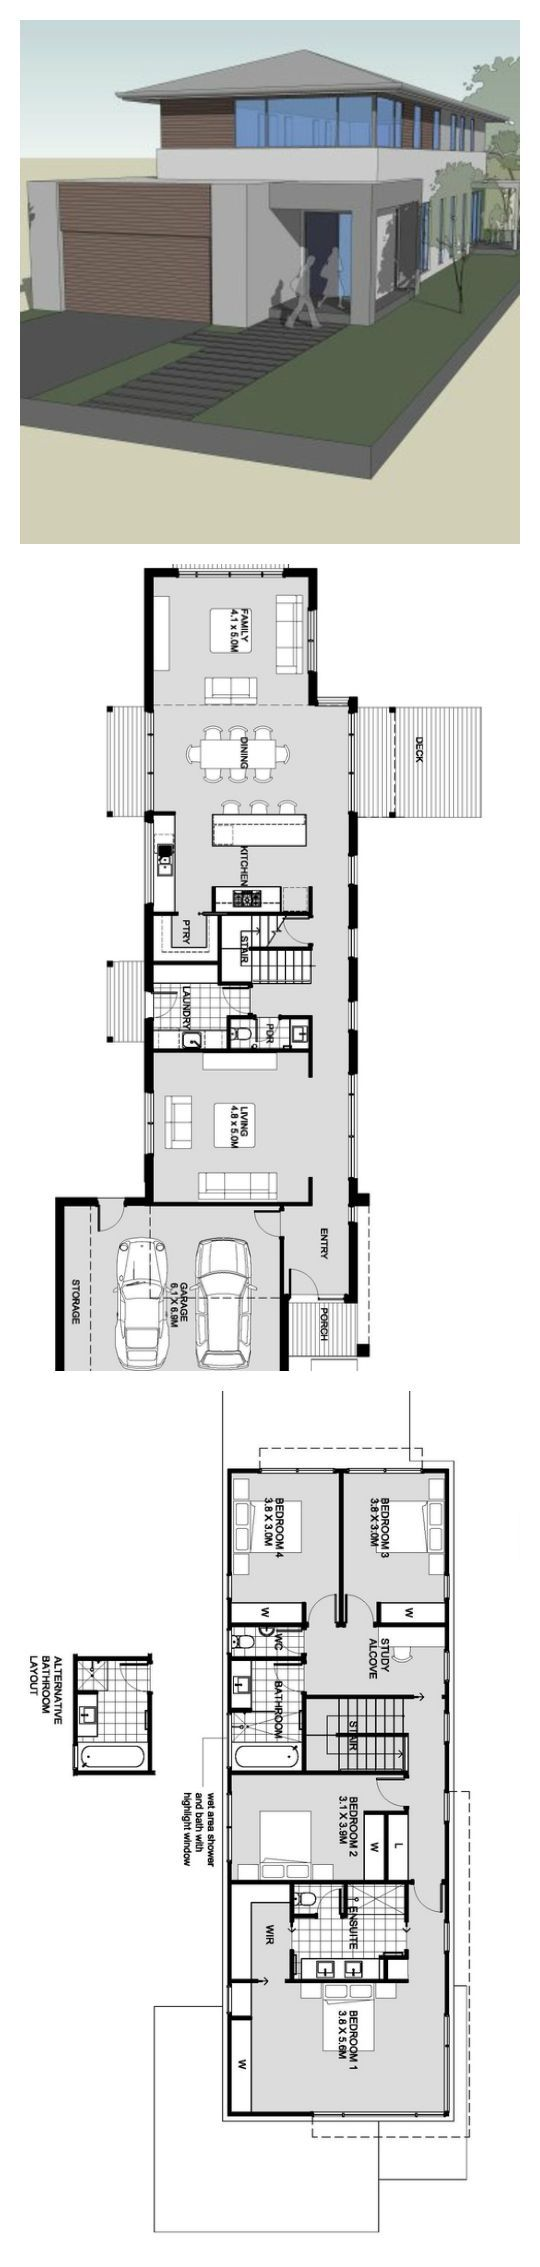 Floor Plan House 31 Best Reverse Living House Plans Images On Pinterest  House